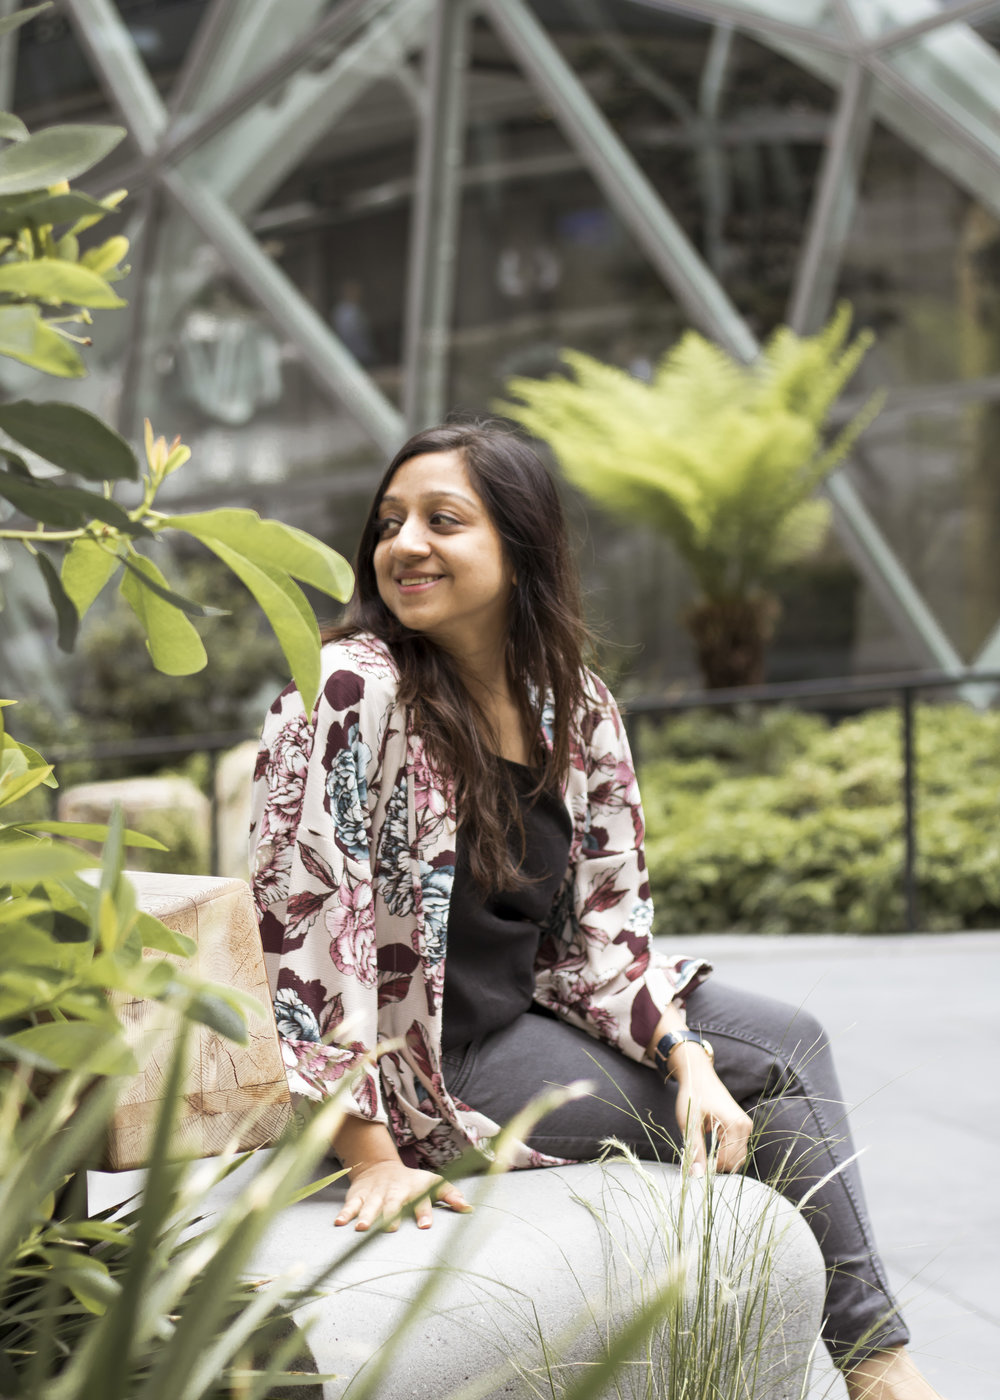 Pictured here is Abha Agrawal, founder of DesiHangover, styled in our  Floral Kimono  at the Amazon Spheres. She moved to Seattle with her husband who works at Amazon.